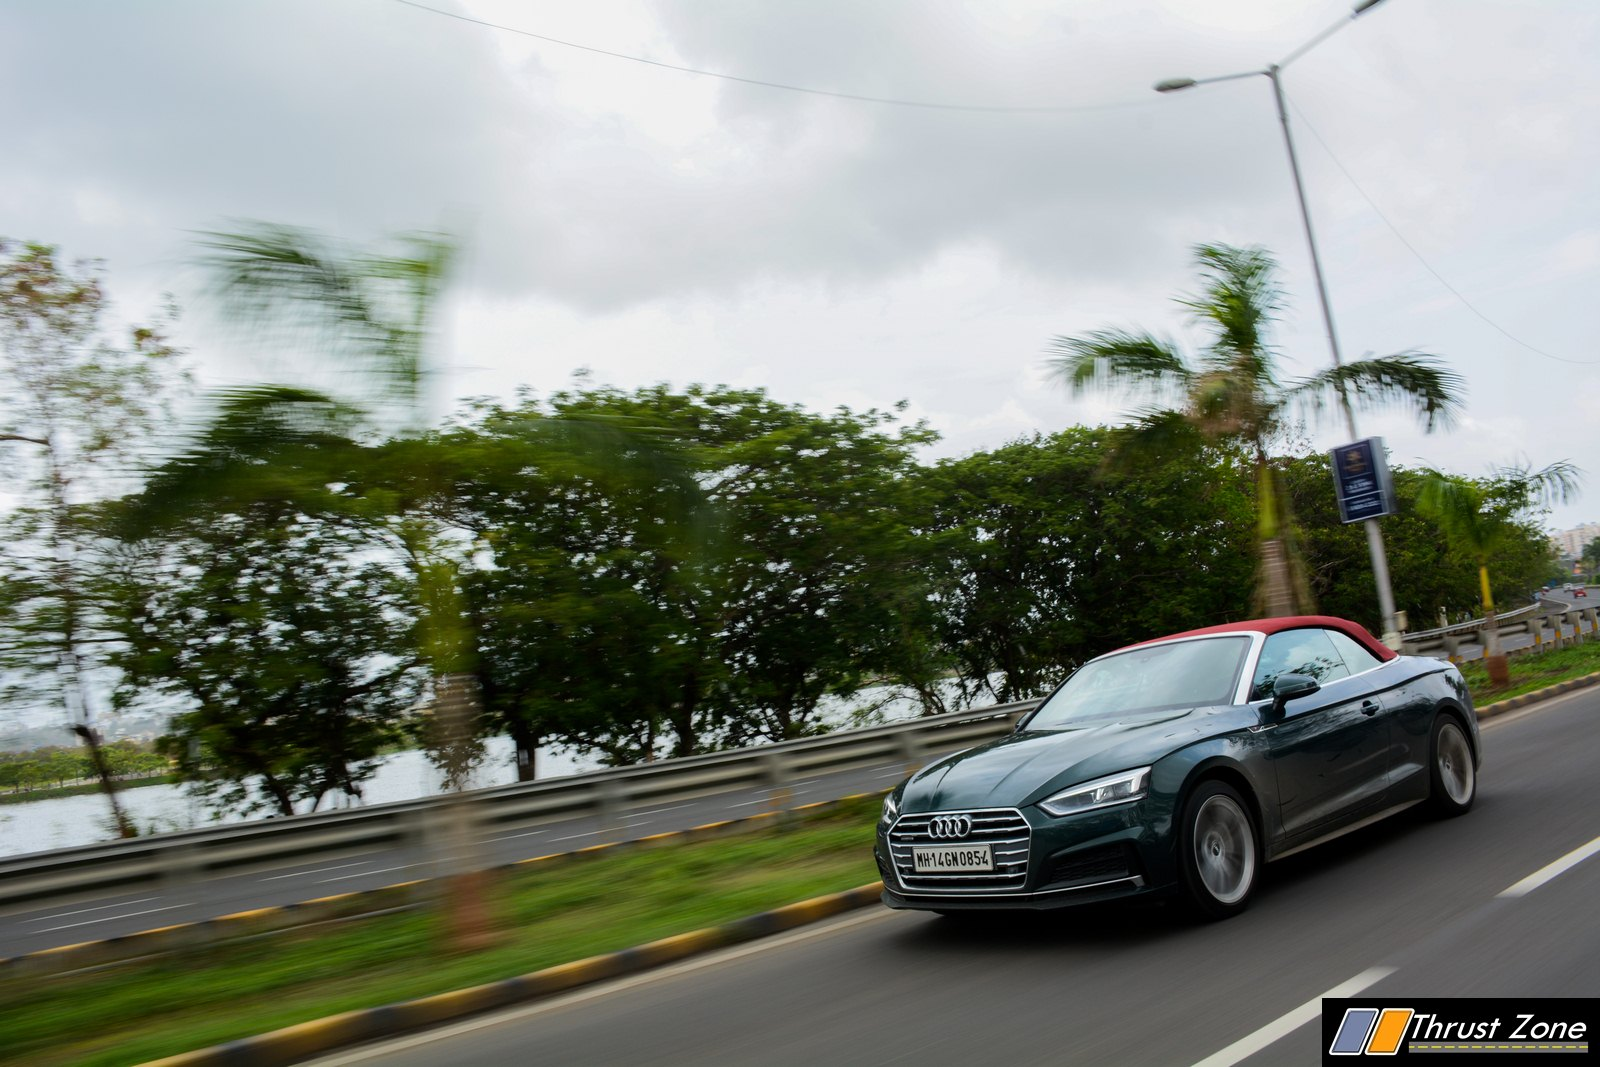 https://www.thrustzone.com/wp-content/uploads/2019/06/2019-Audi-A5-Cabriolet-Convertible-India-Diesel-Review-7.jpg